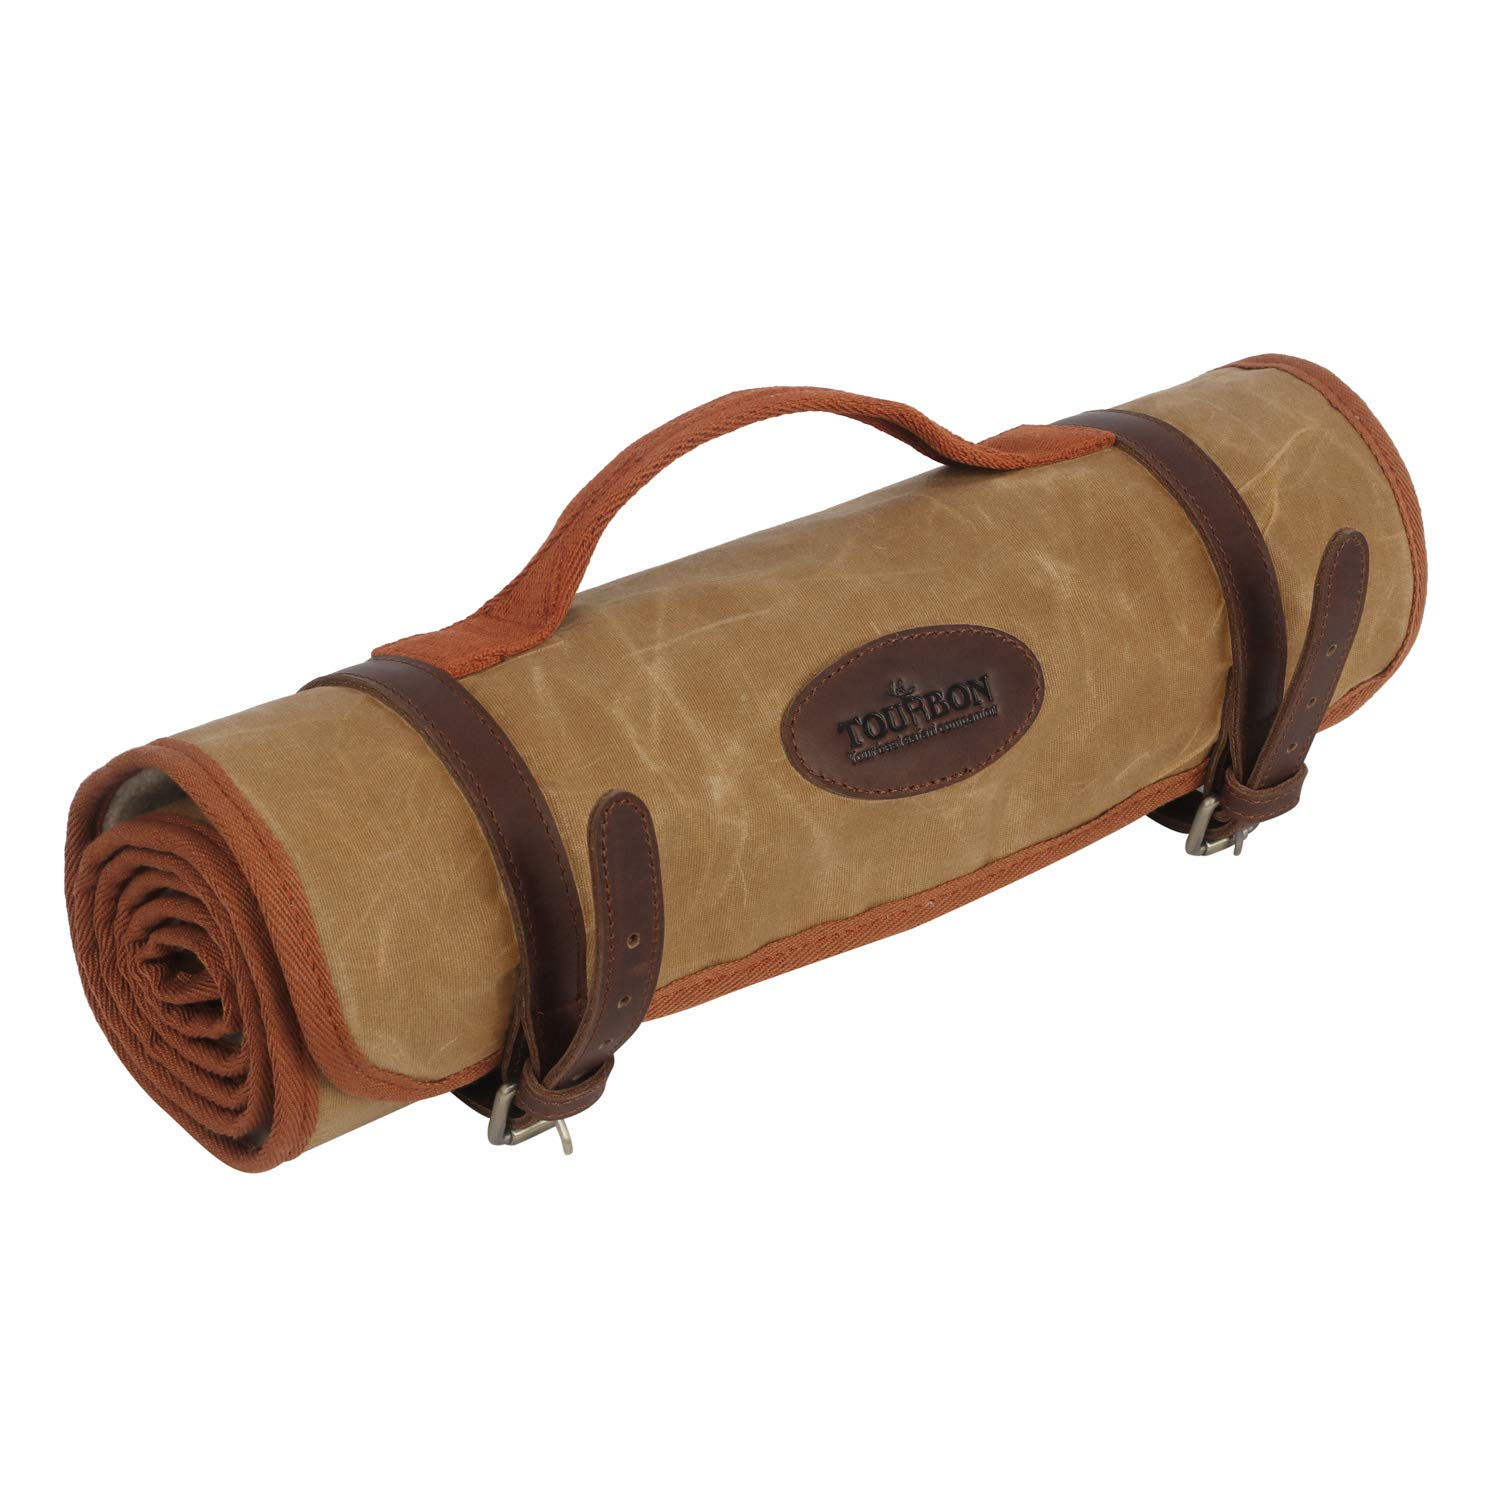 TOURBON Shooting Hunting Roll-up Gun Cleaning Mat Pad with Tool Storage Pocket by TOURBON